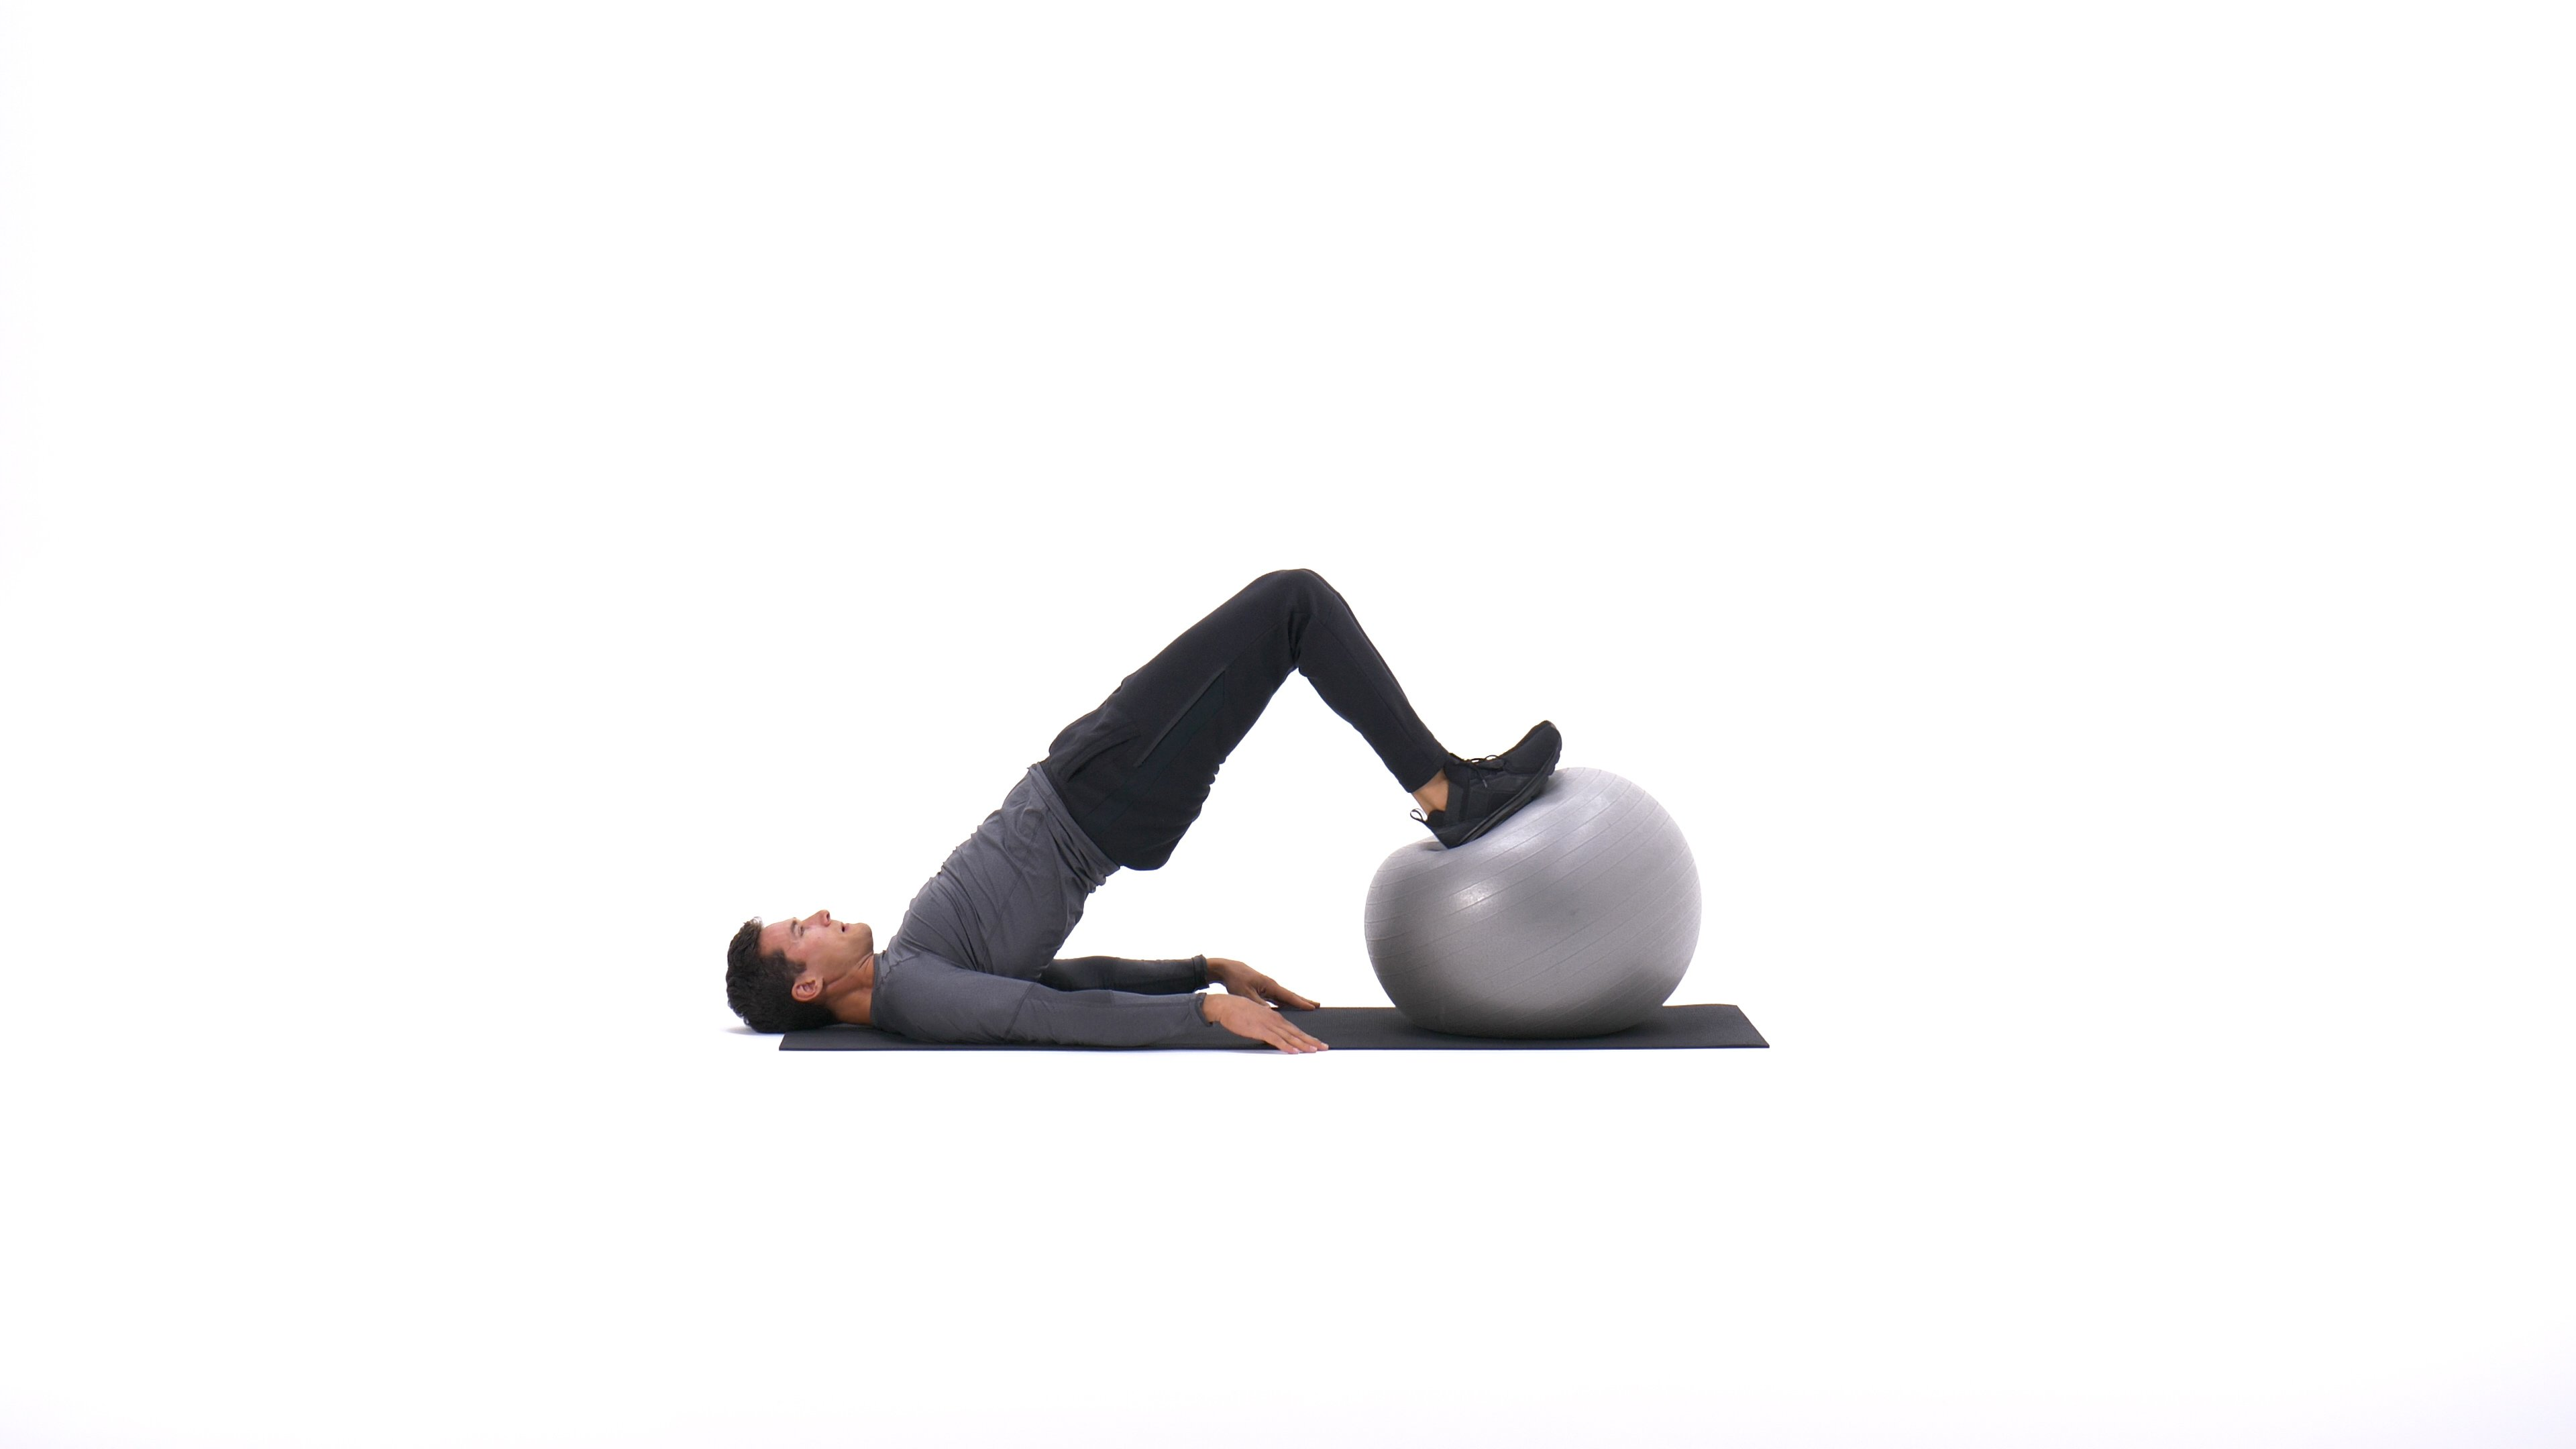 Exercise ball leg curl image